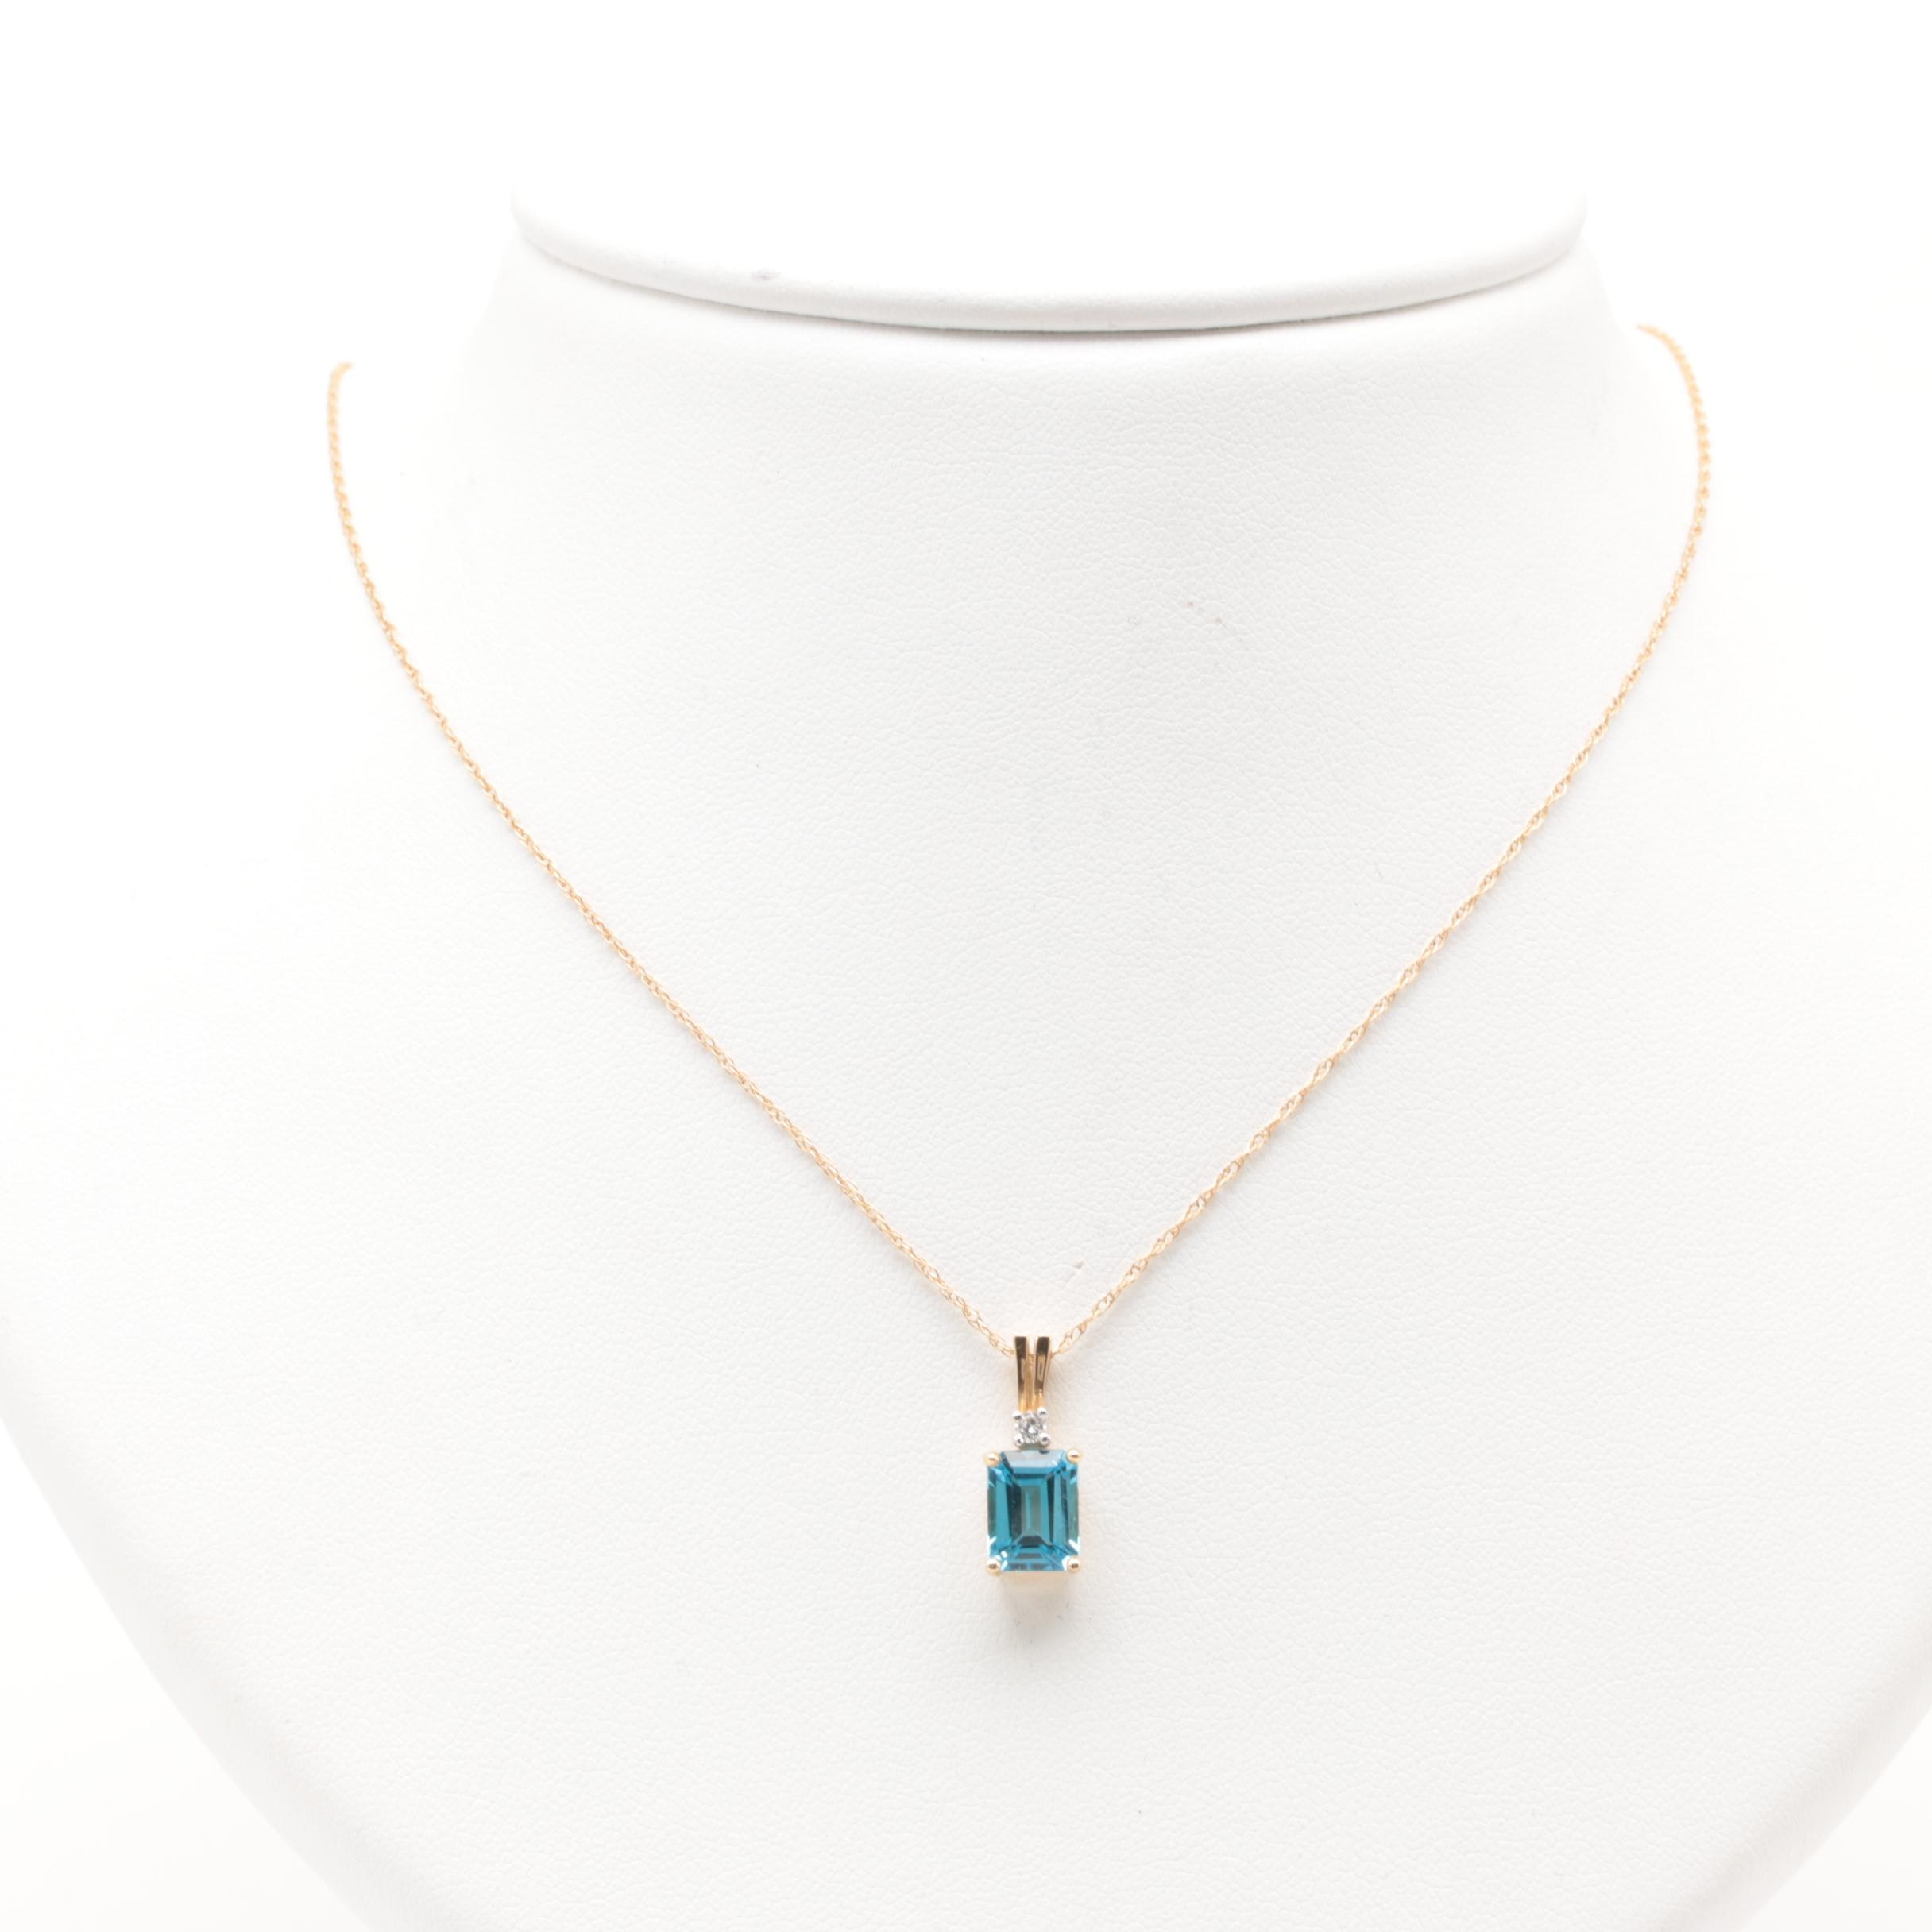 14K Yellow Gold Blue Topaz and Diamond Pendant Necklace with 14K White Gold